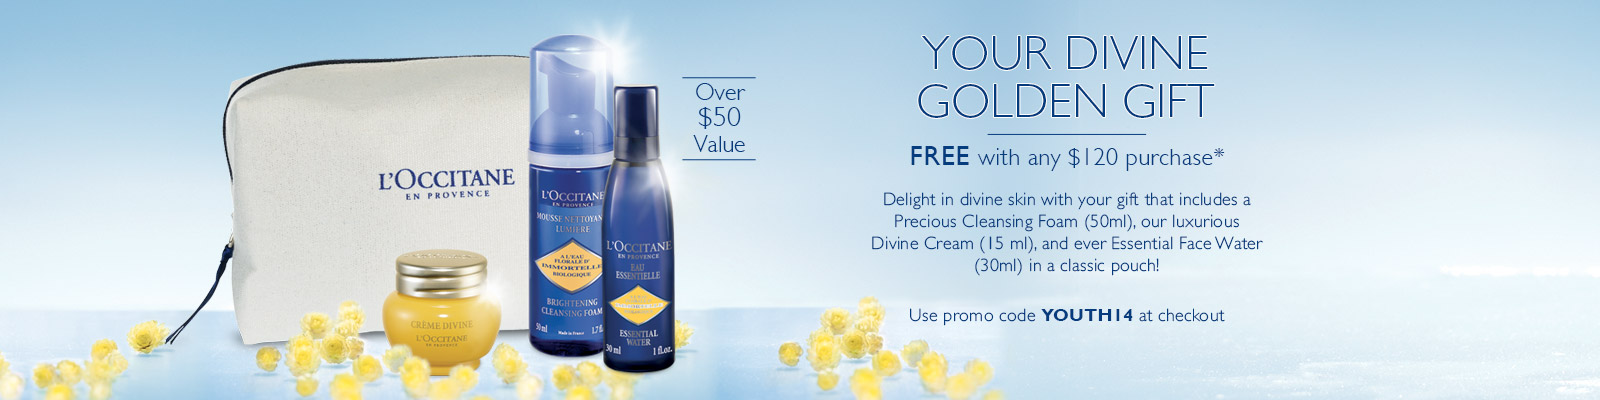 Your divine golden gift. Delight in divine skin with your gift that includes a precious cleansing foam, our luxurious Divine cream, and ever essential face water in a classic pouch!